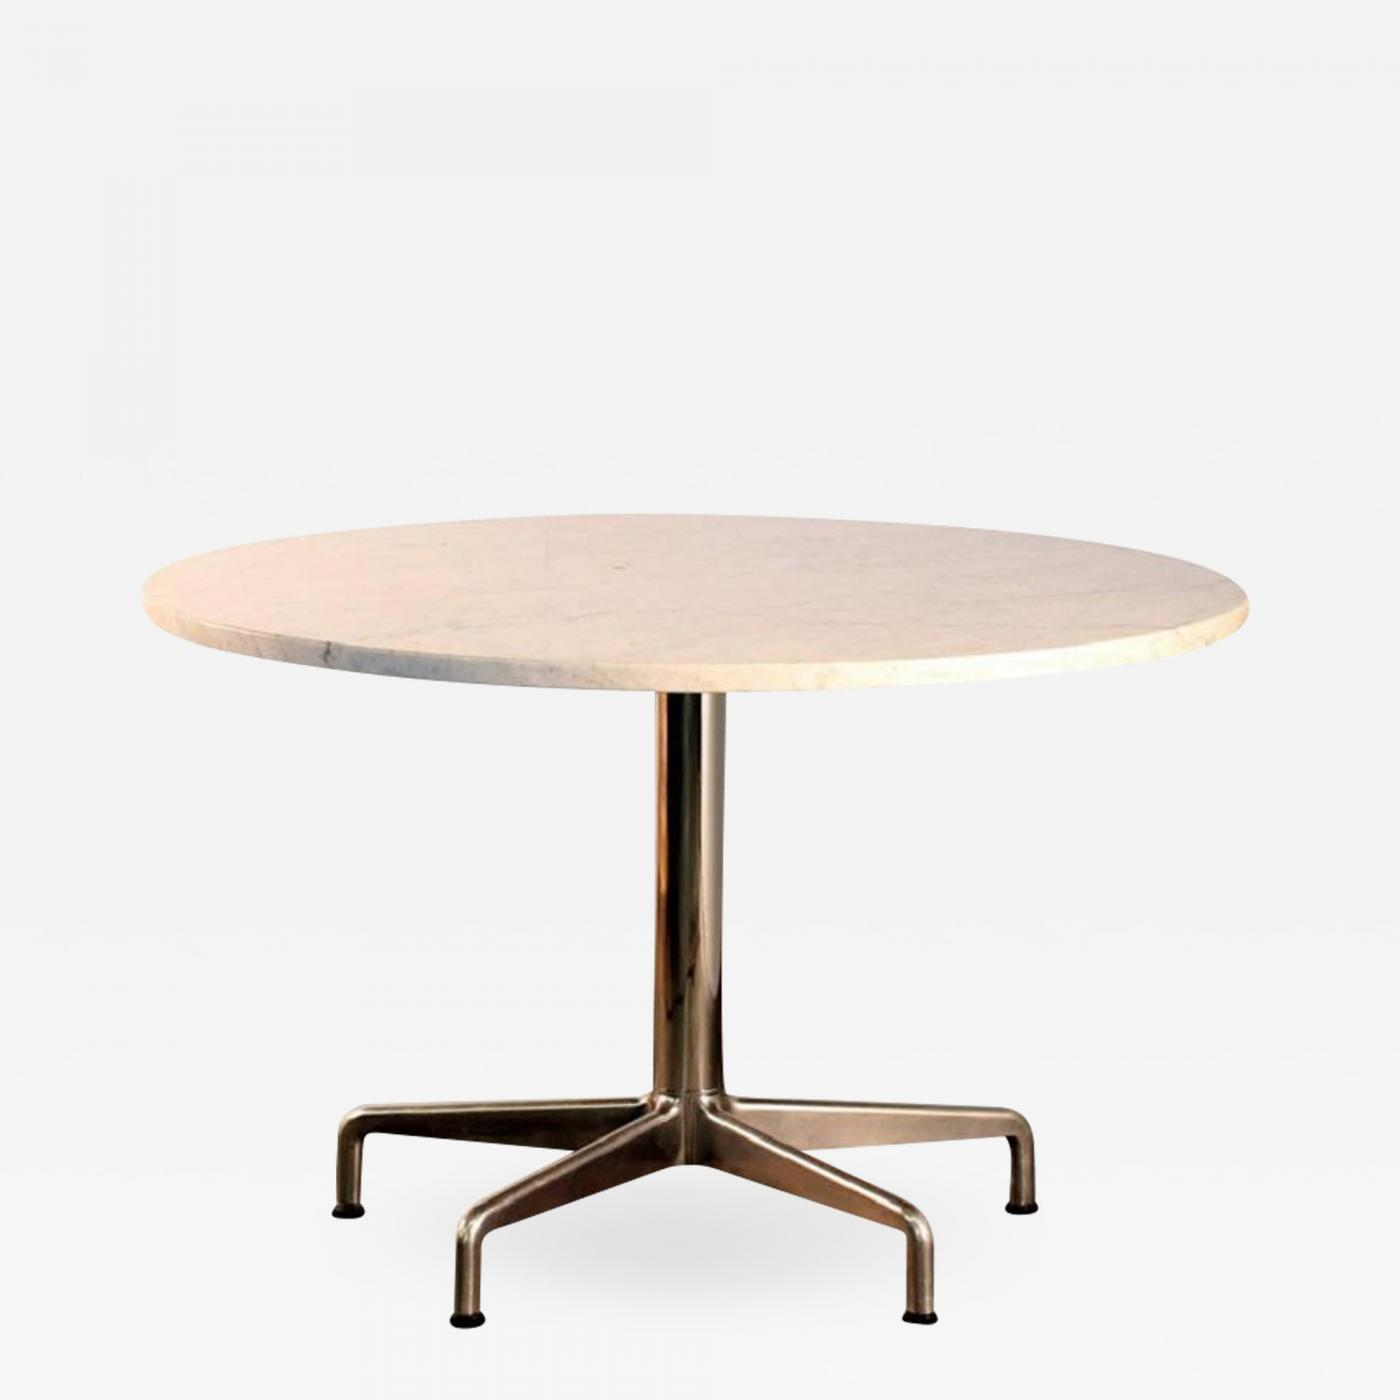 Charles Ray Eames Segmented Base And Marble Top Round Dining Table By Eames For Knoll